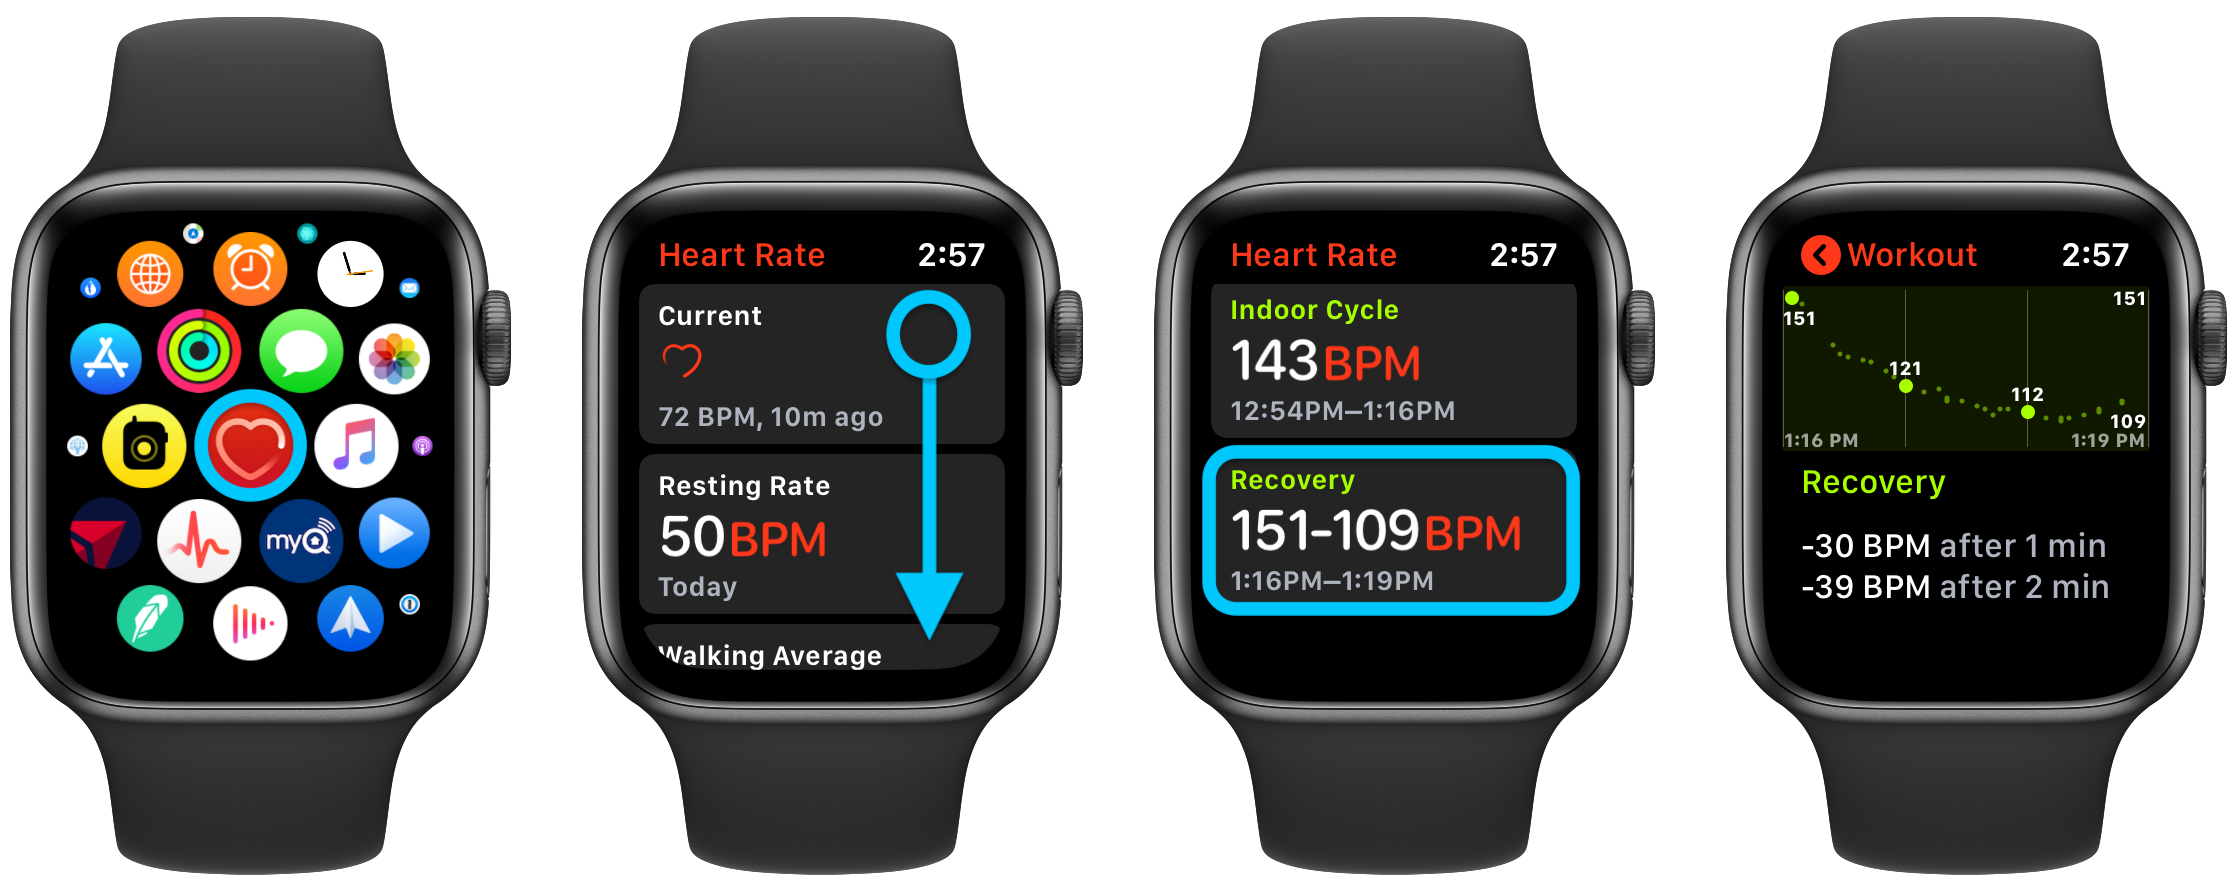 How to see Apple Watch heart rate recovery and what is it walkthrough 1